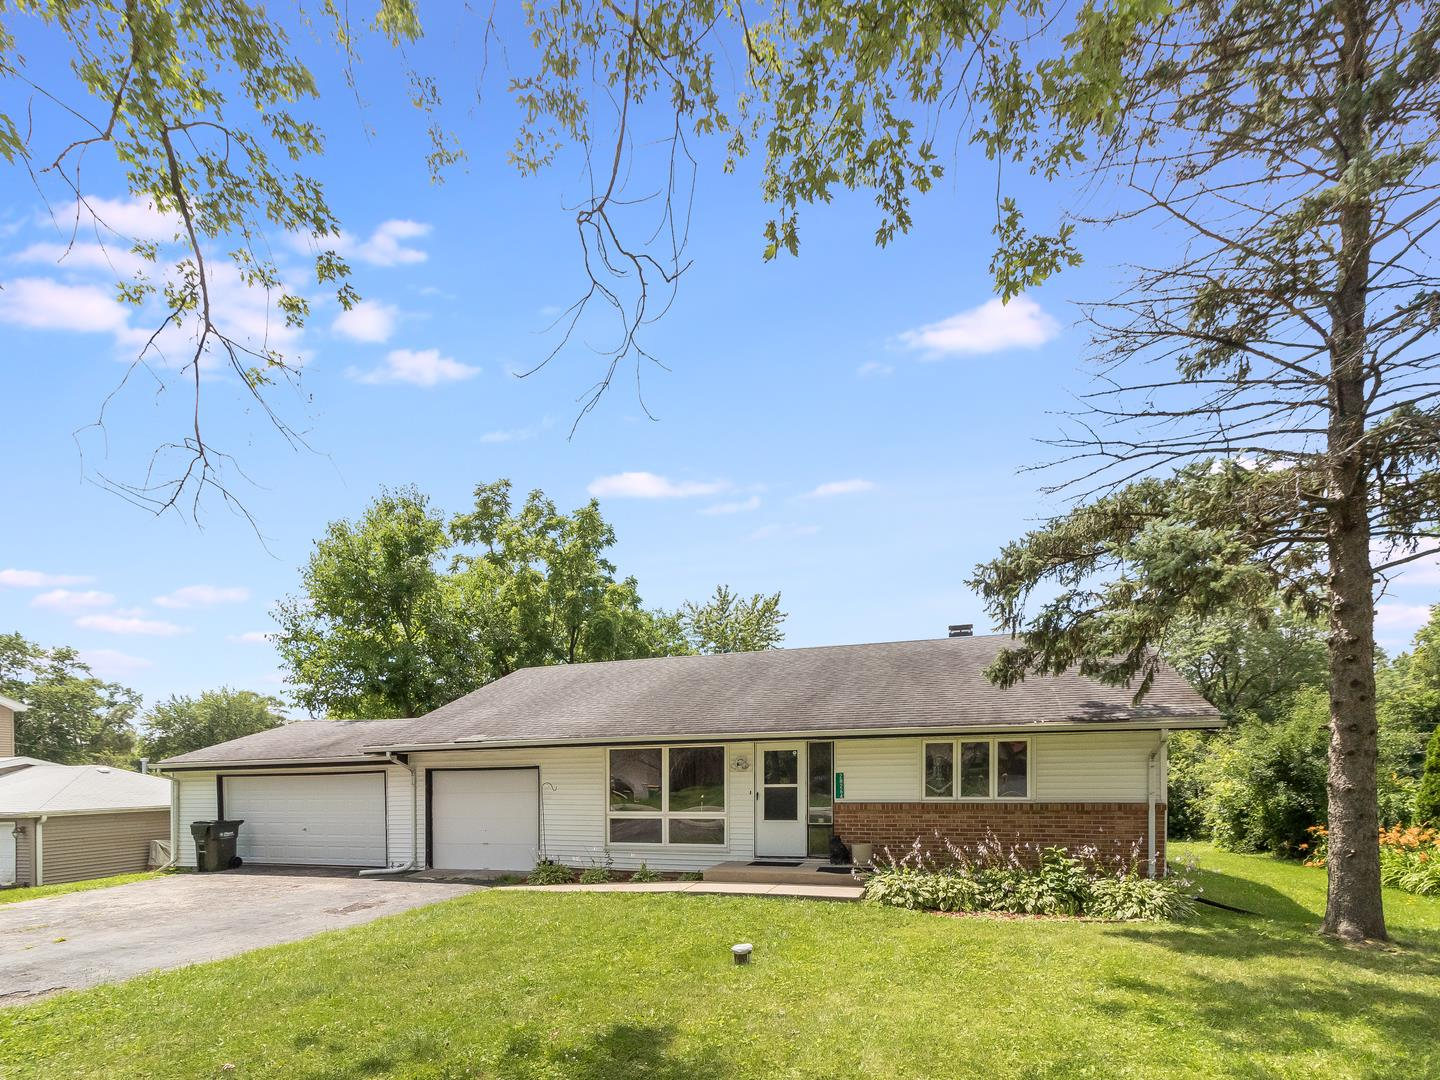 2N264 Virginia Avenue, Glen Ellyn, IL 60137 - #: 10854629